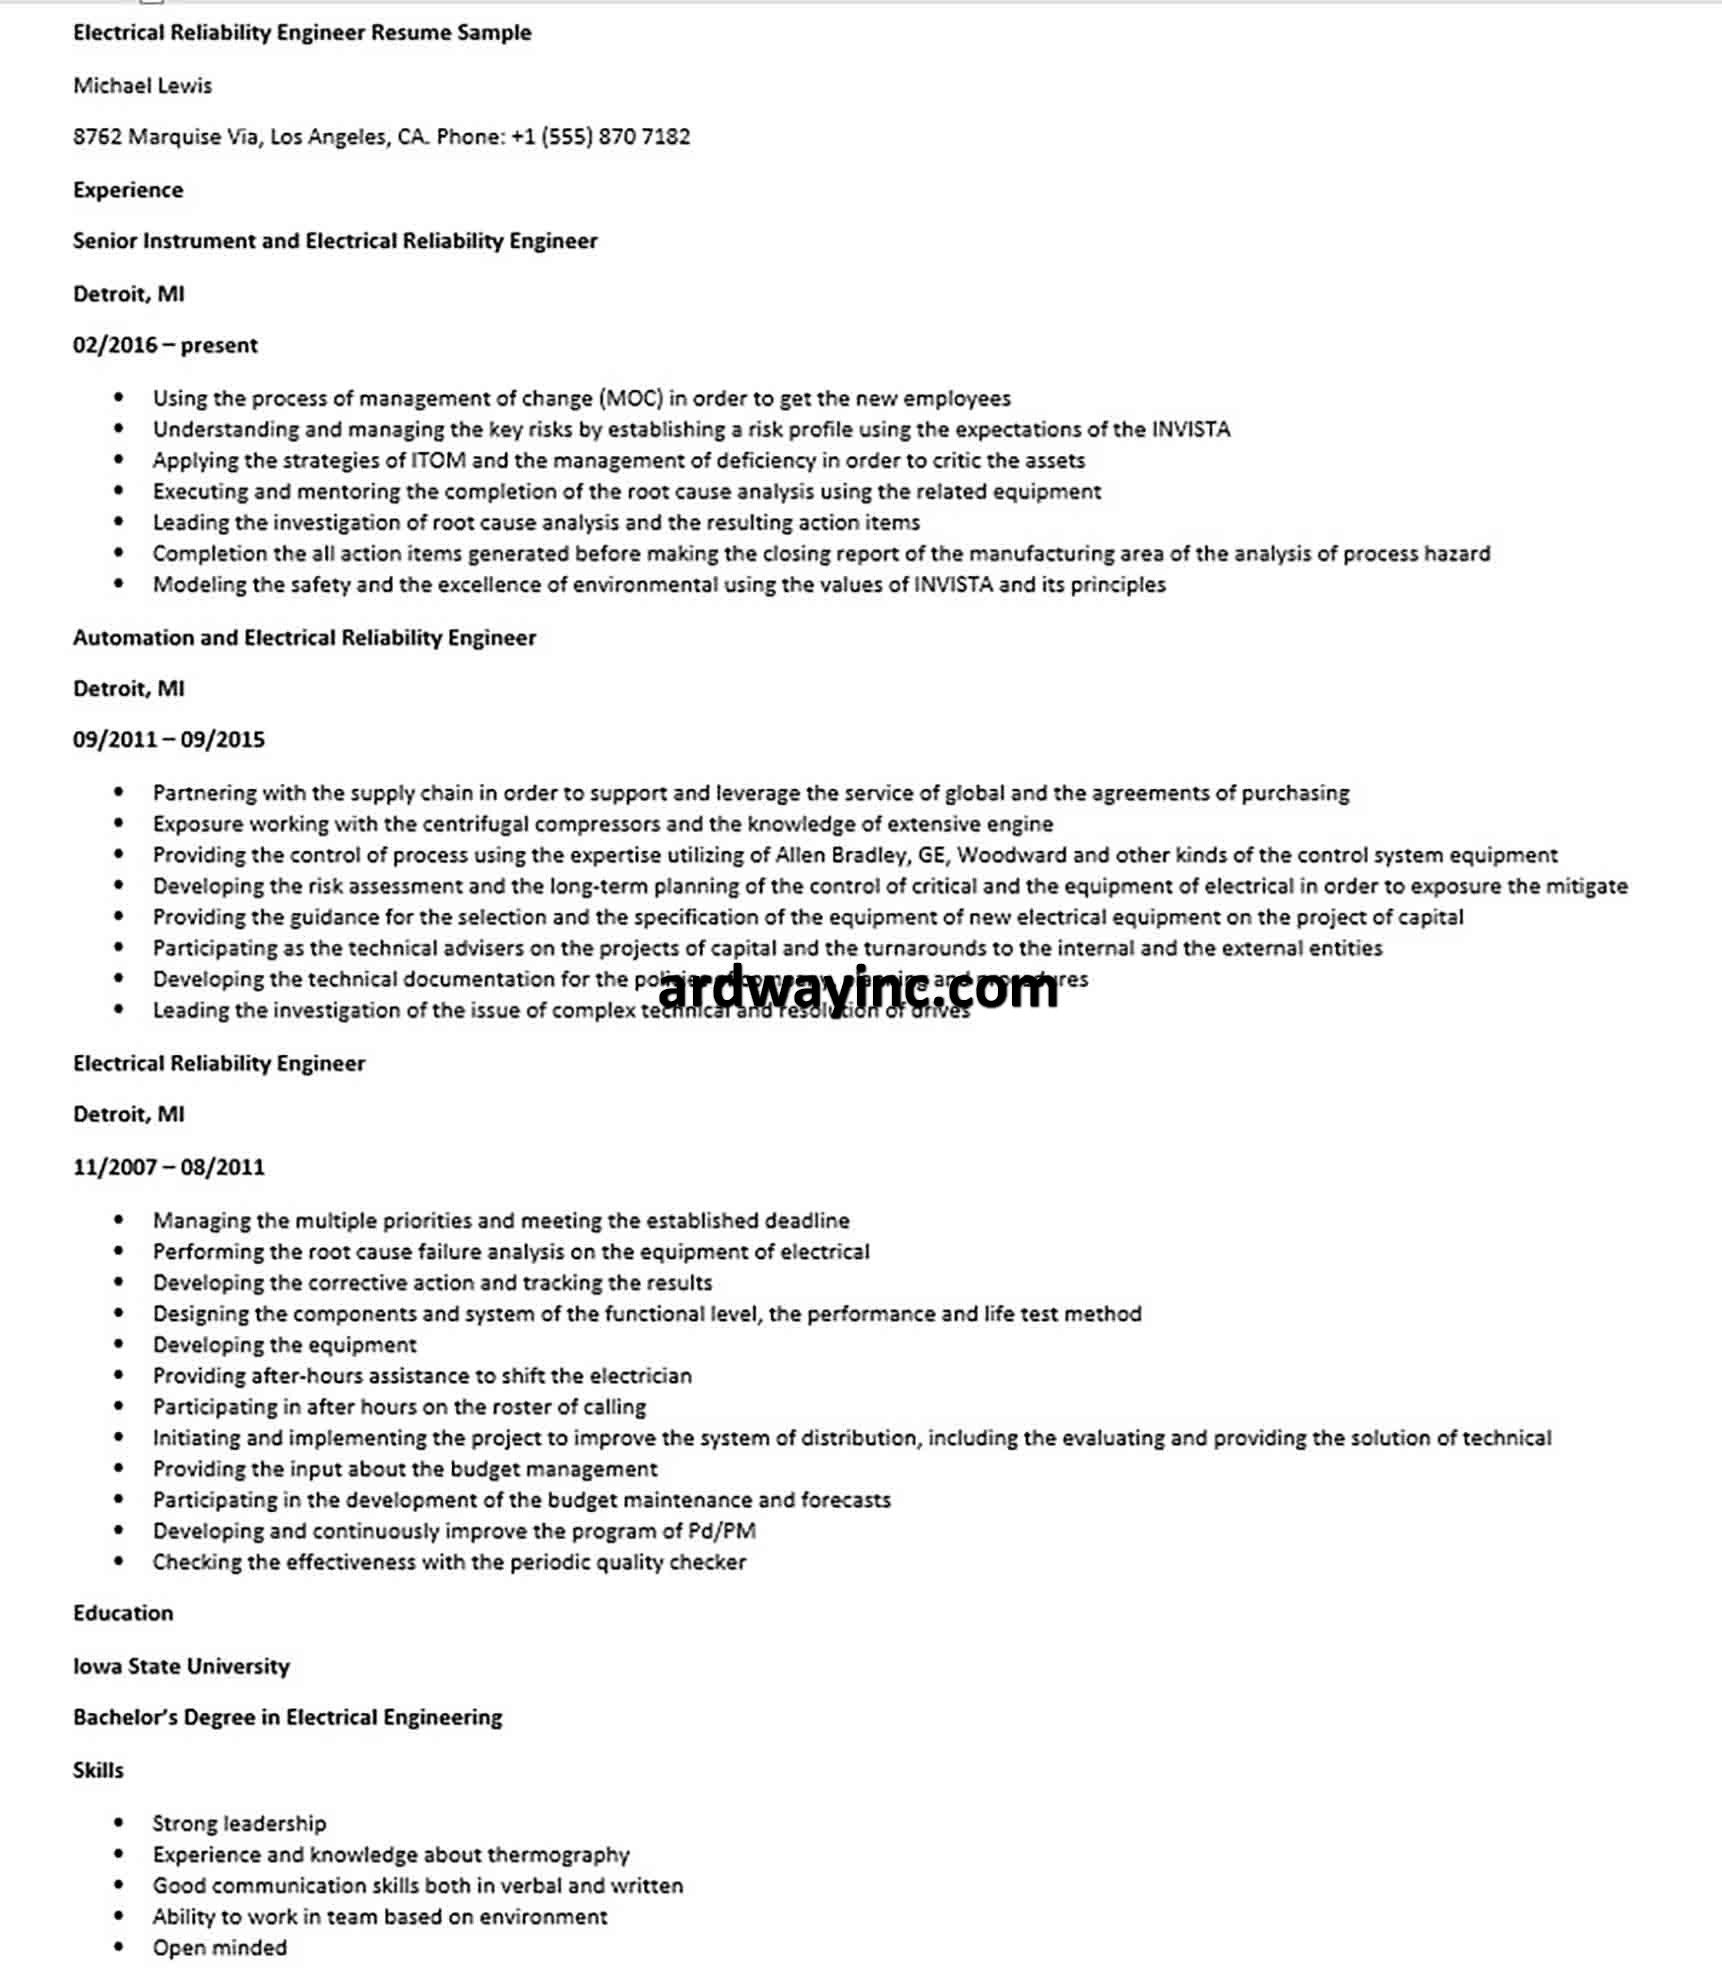 Electrical reliability engineer resume sample